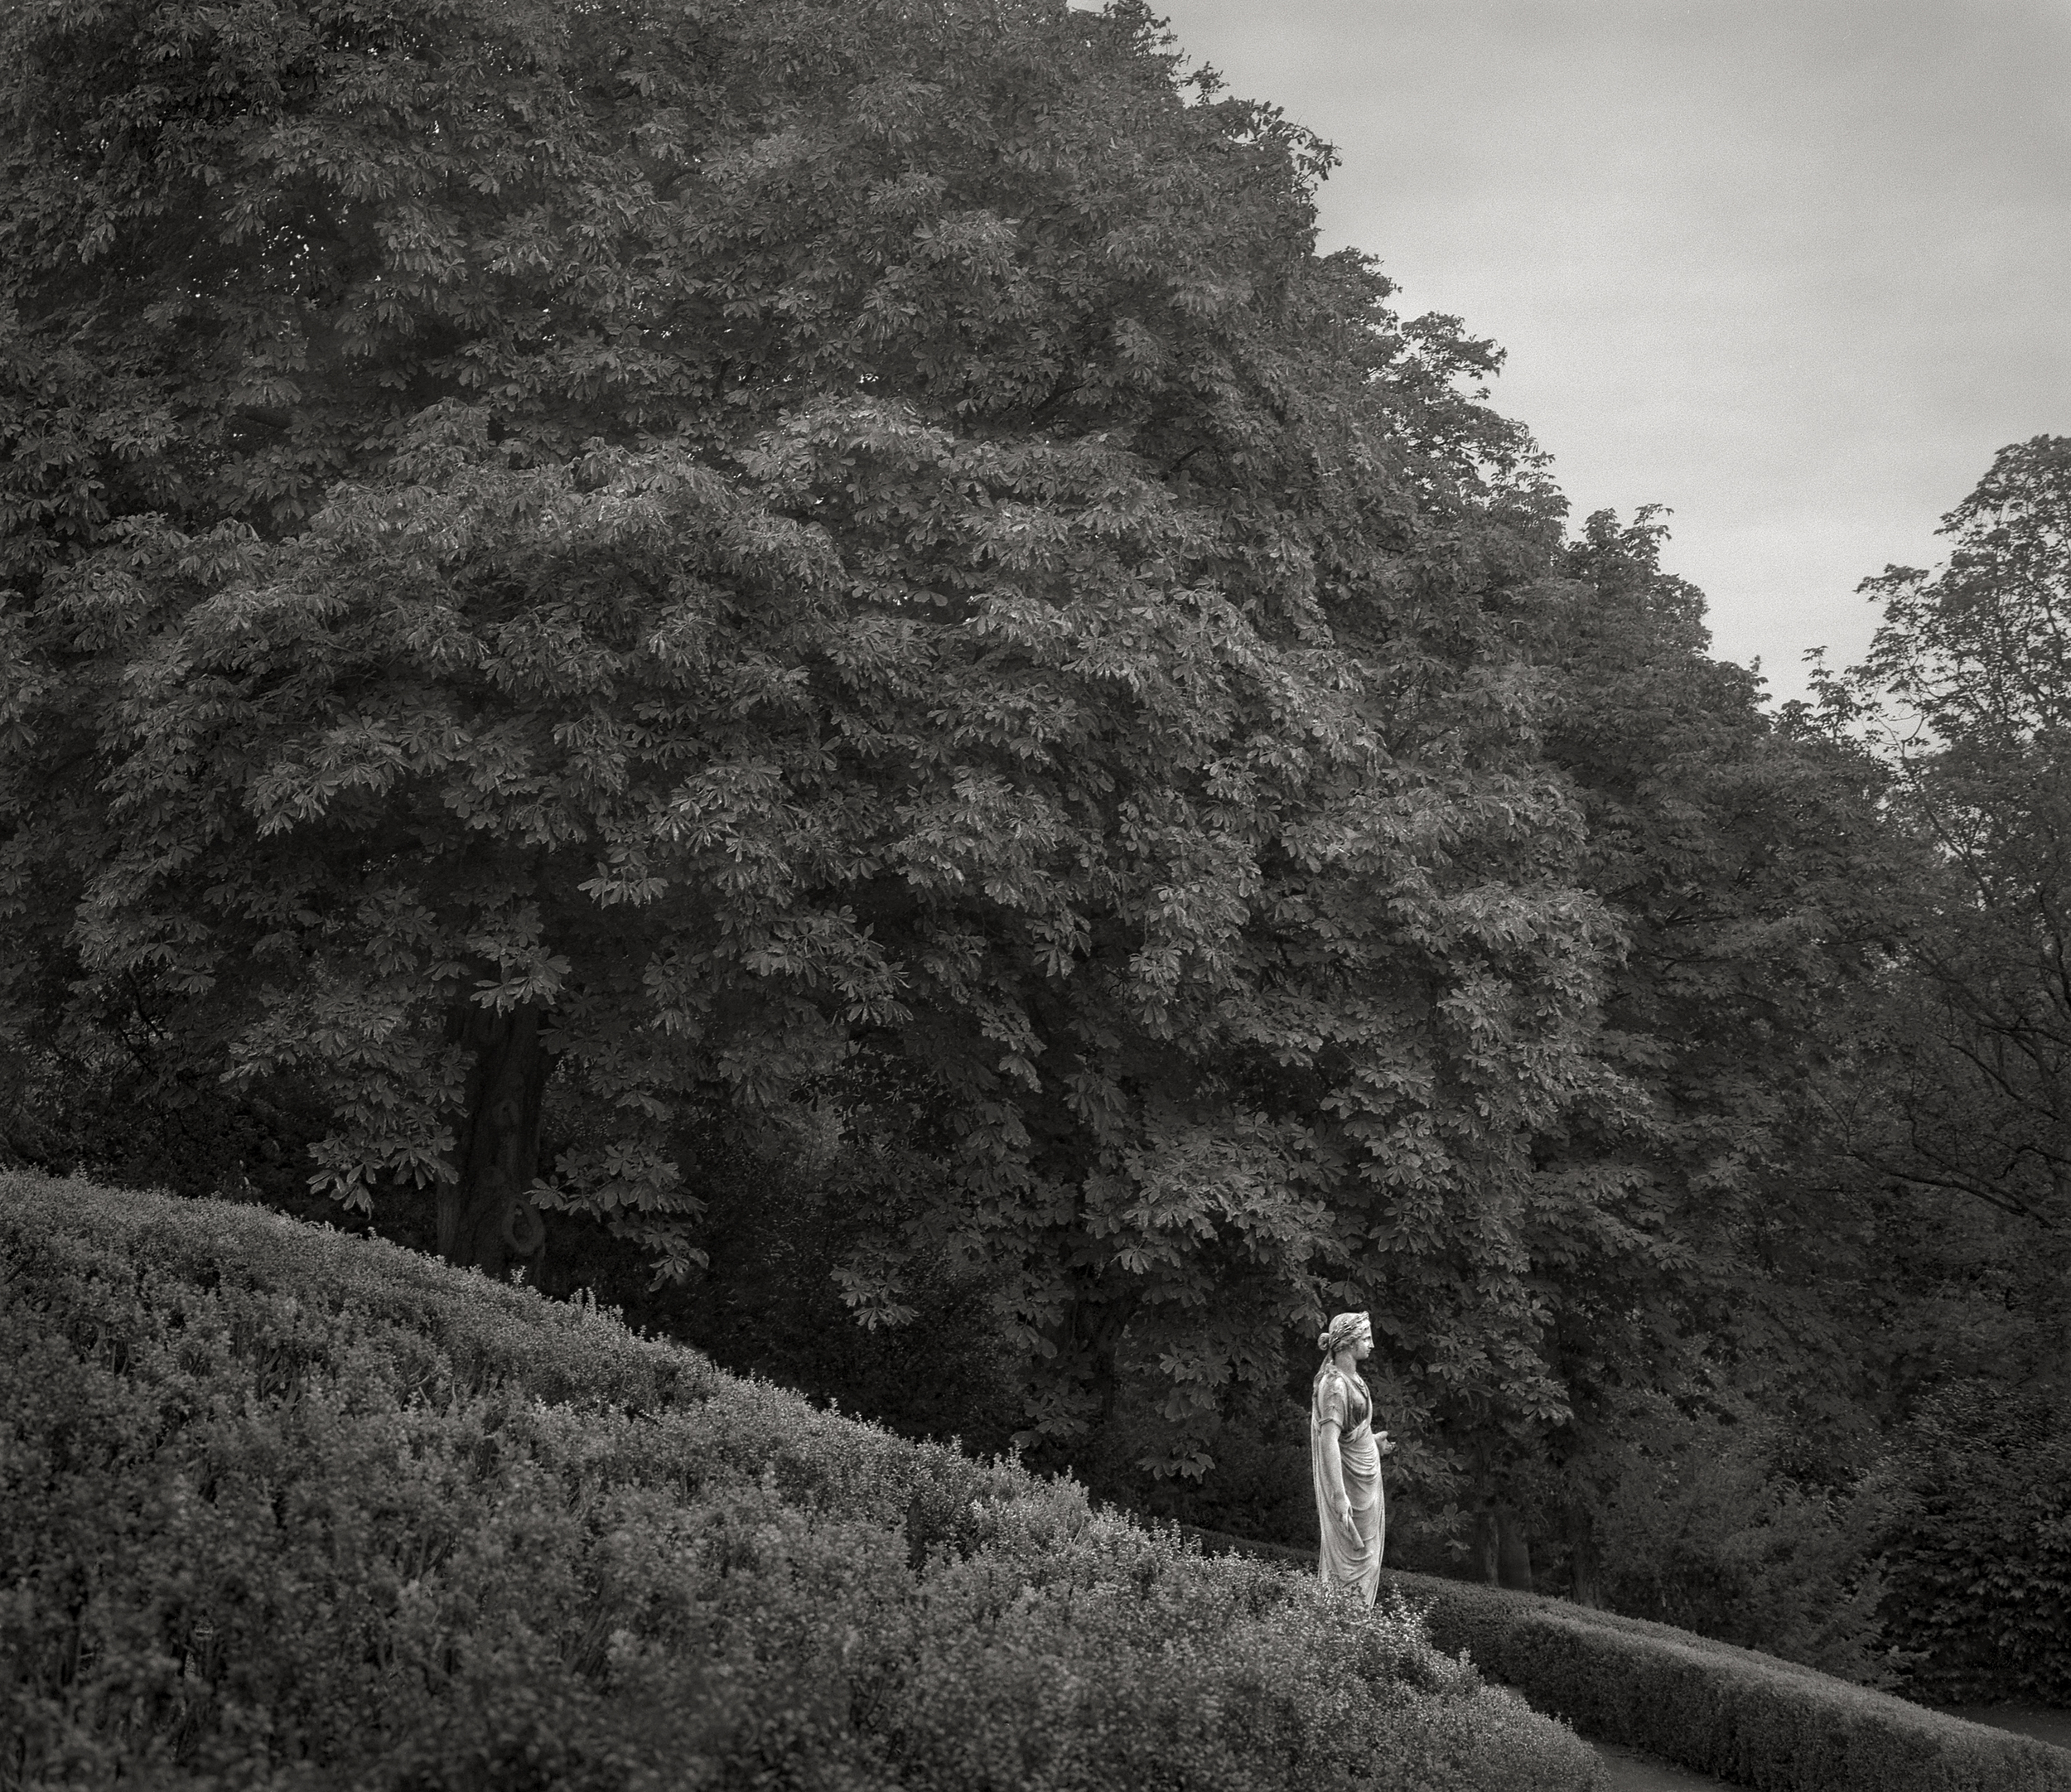 Hillside, Waddeson Manor   Beth Dow  7.5 x 9, Edition of 5, signed and numbered Archival inkjet print from platinum original